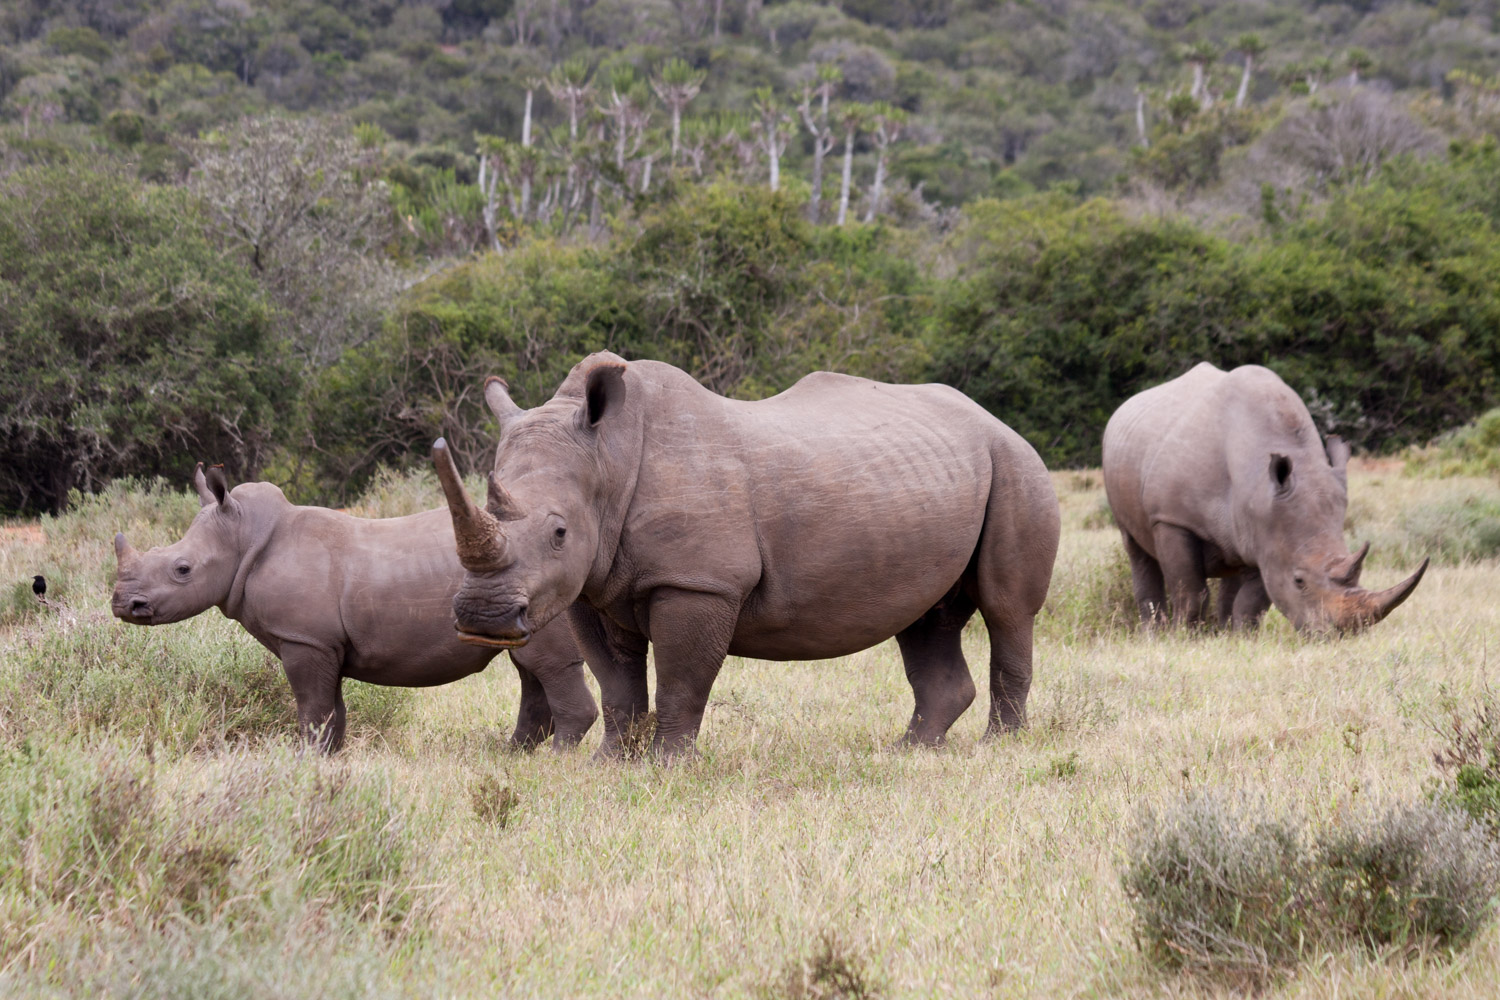 A rhino family in South Africa